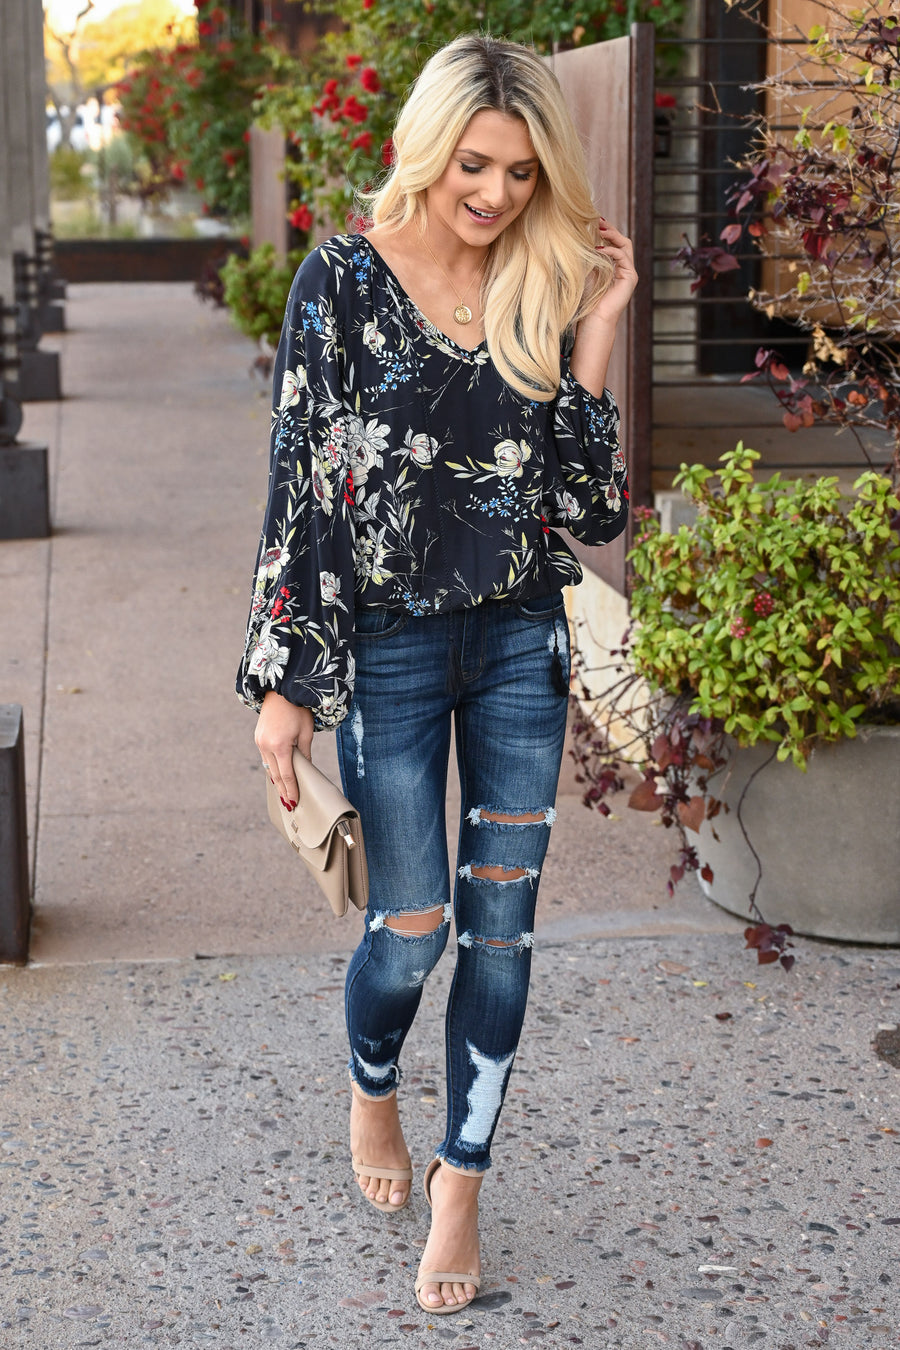 LOVE STITCH Whisk Me Away Top - Midnight women's floral flowy blouse, Closet Candy Boutique 1